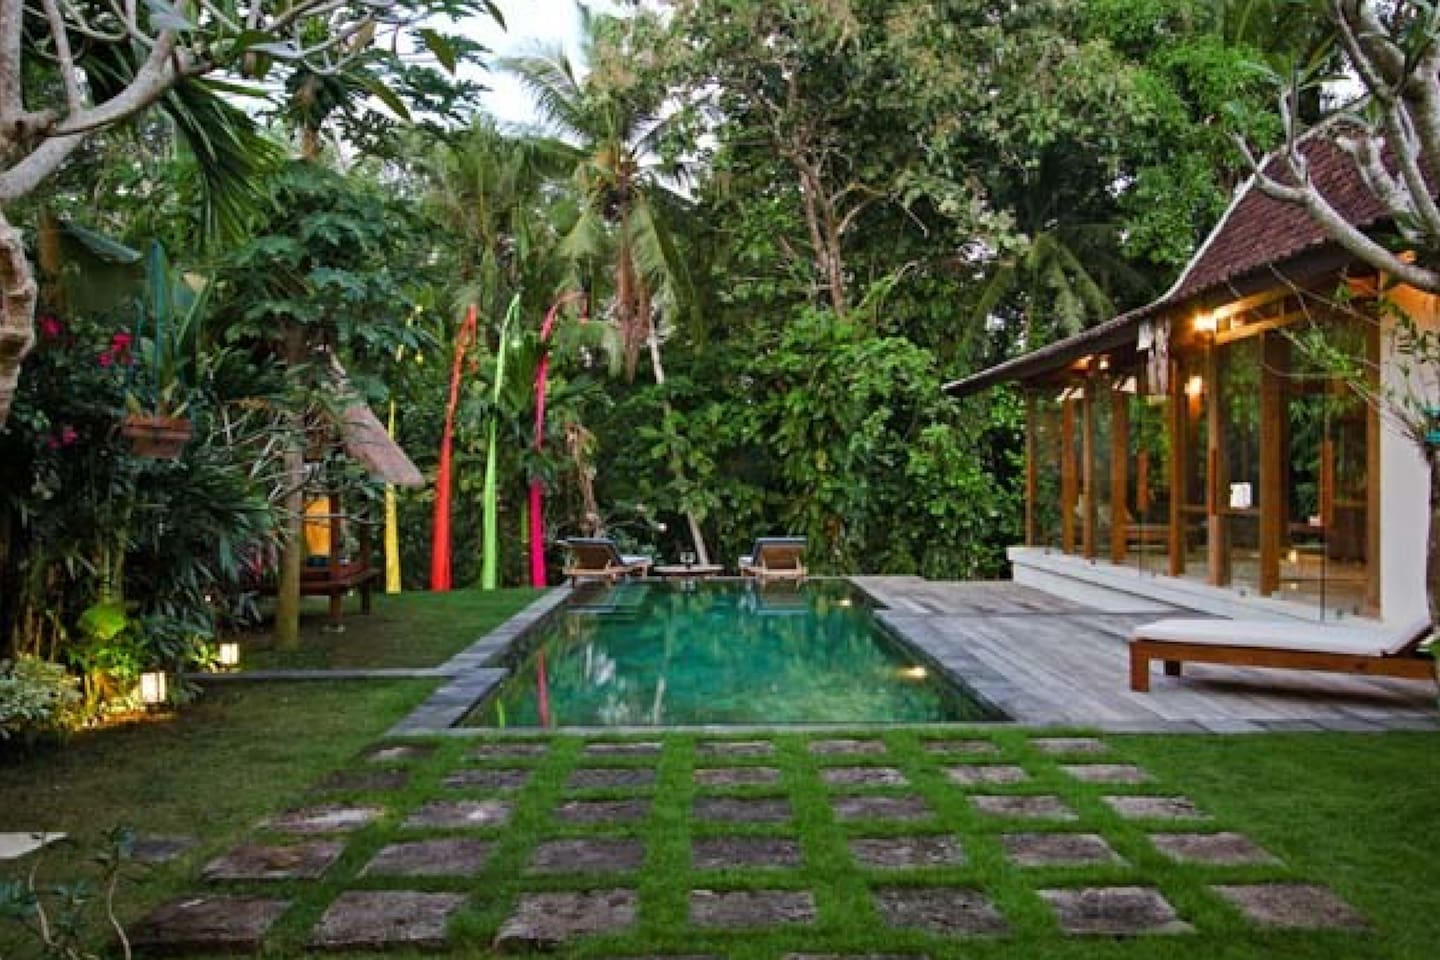 Central outdoor area with 10m pool.